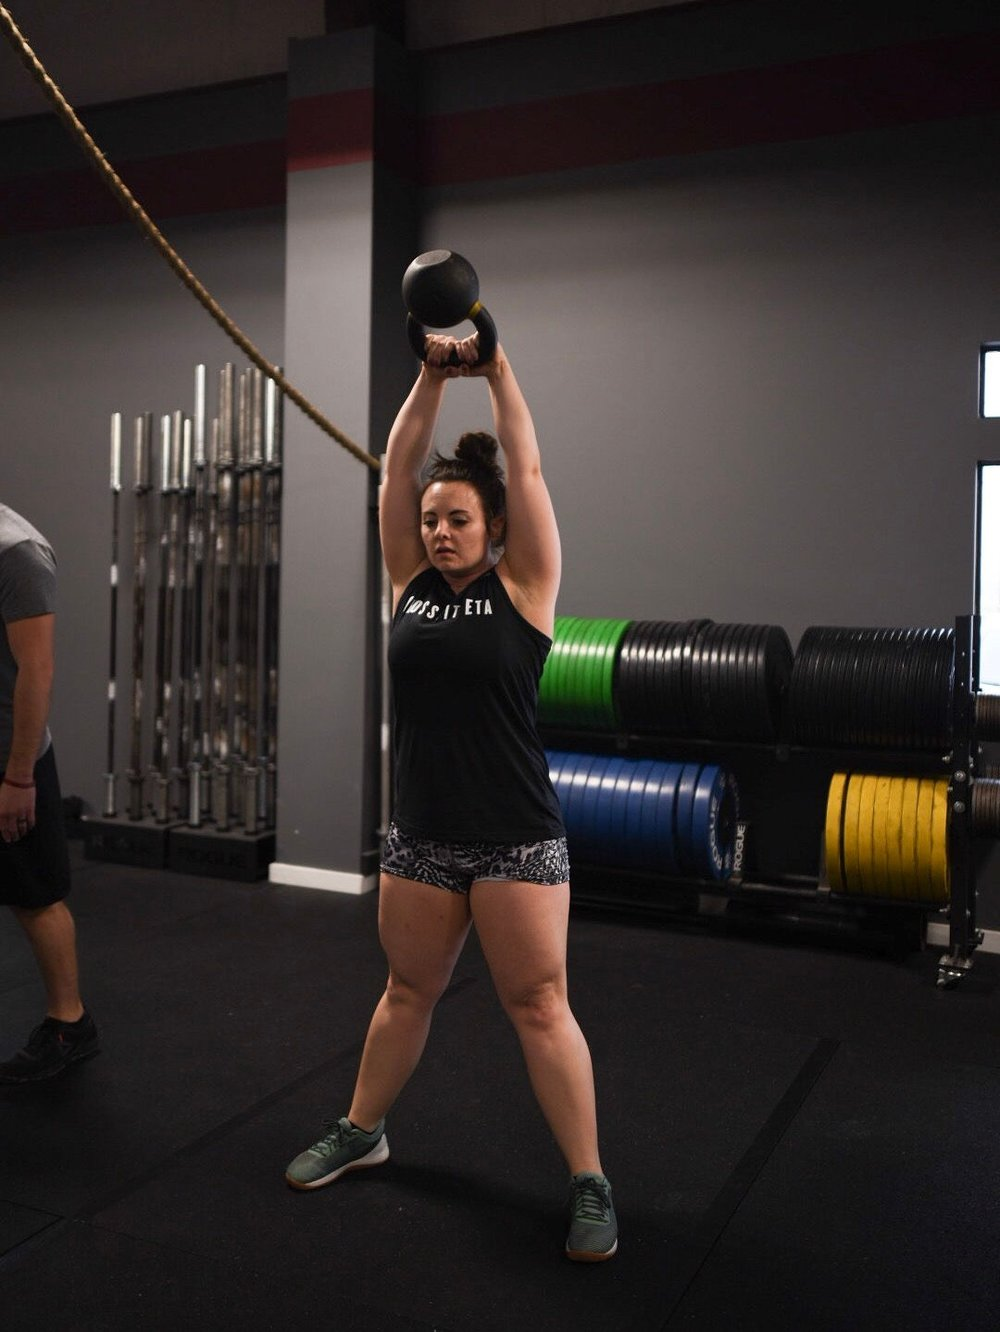 Sarah Miller - CrossFit Coach1. When and how did you start CrossFit?I first started CrossFit in 2012 after driving by a box close to my work. I have always liked working out but was over my 24-hour fitness routine. After trying my first workout (running and kettle bell swings) I was addicted to the challenge.2. Why do you like CrossFit?I love* CrossFit because of the community the most. The feeling of hitting a new PR after months of hard work is so rewarding, but the relationships I have made keep me coming back. There is so much to say about people who literally